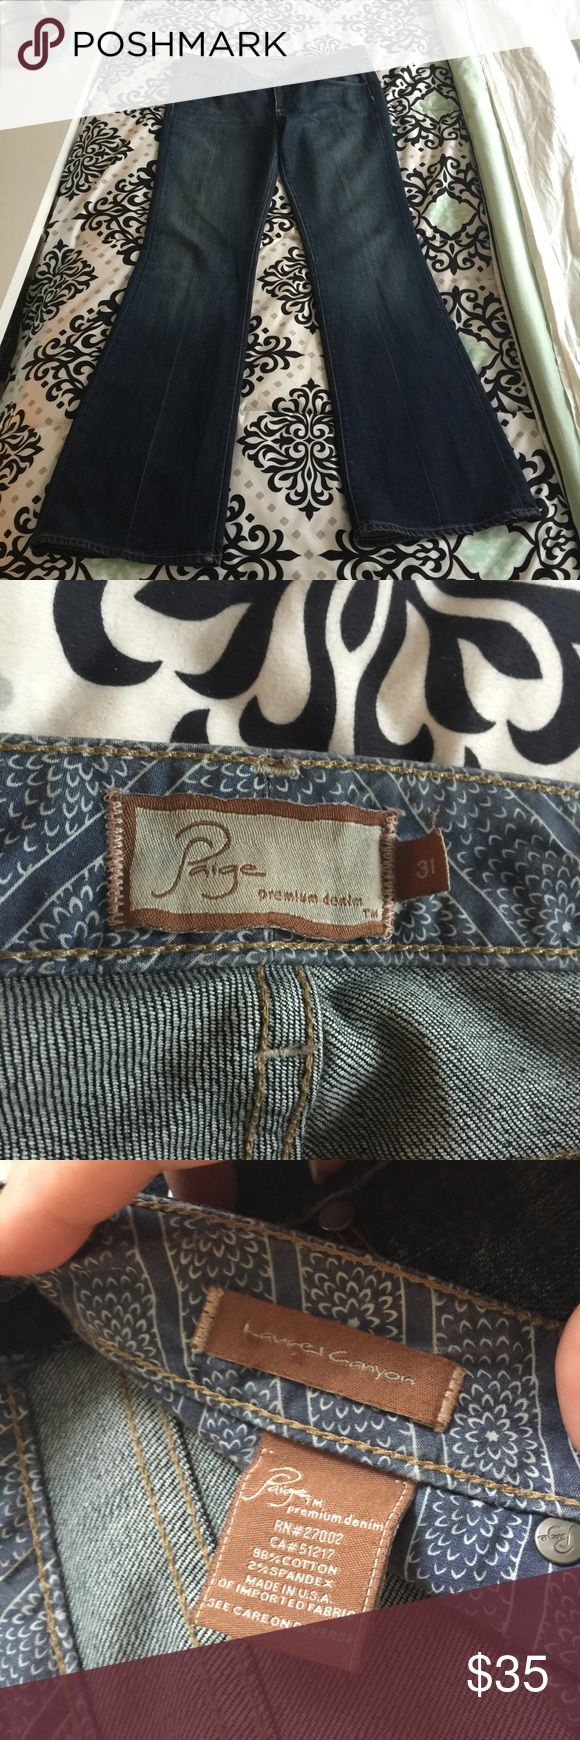 Paige Premium Denim Jeans Laurel Canyon low rise jeans. Have a great stretch and a slight flare to them. Great to wear with heels! Paige Jeans Jeans Boot Cut